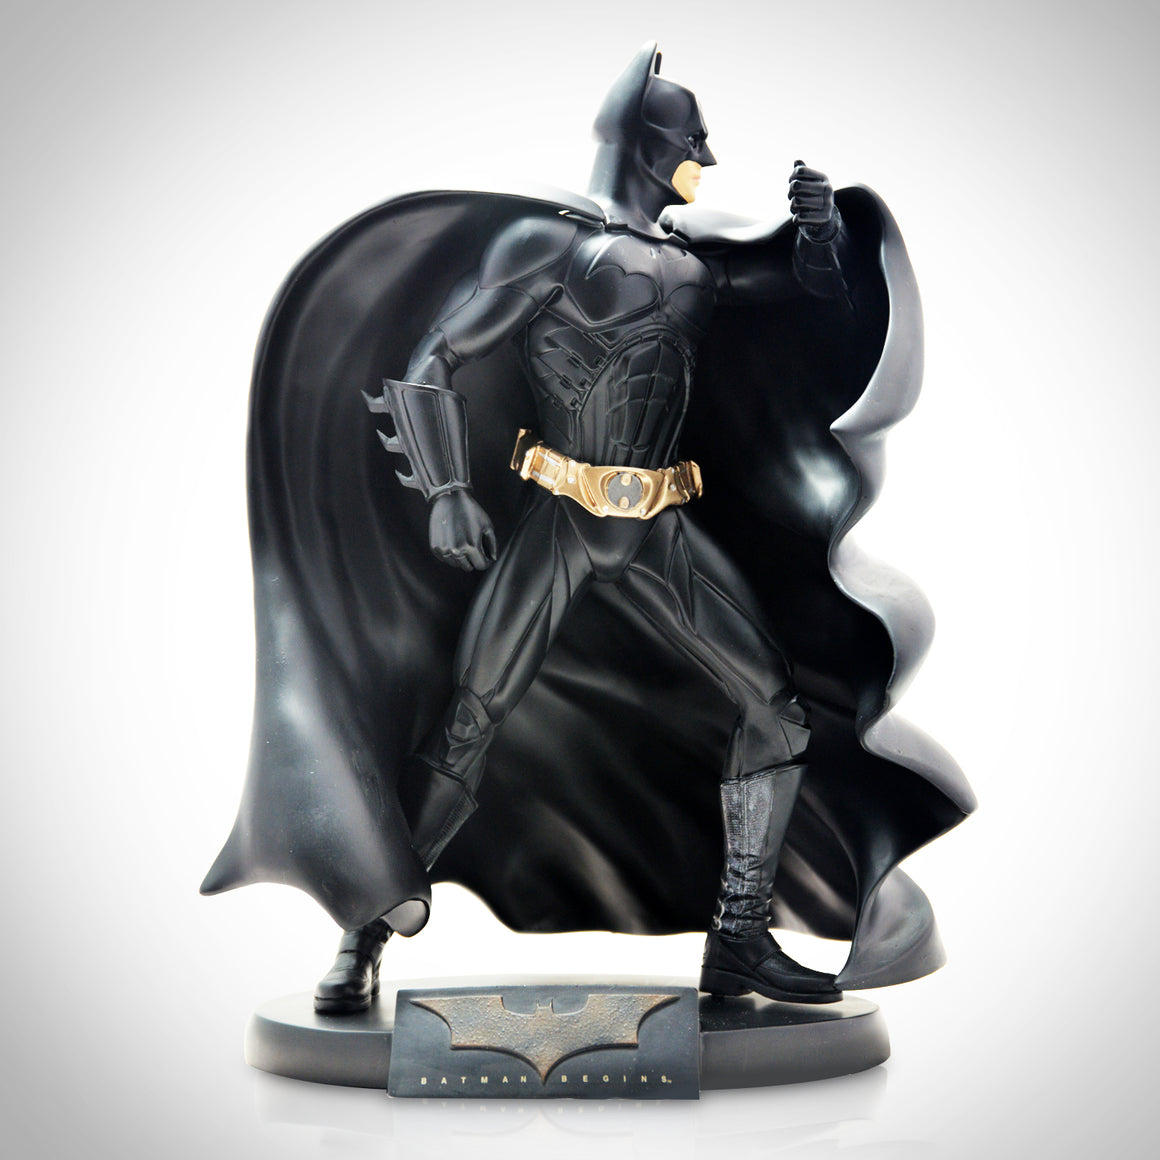 Limited Edition 'BATMAN BEGINS - CHRISTIAN BALE' Statue